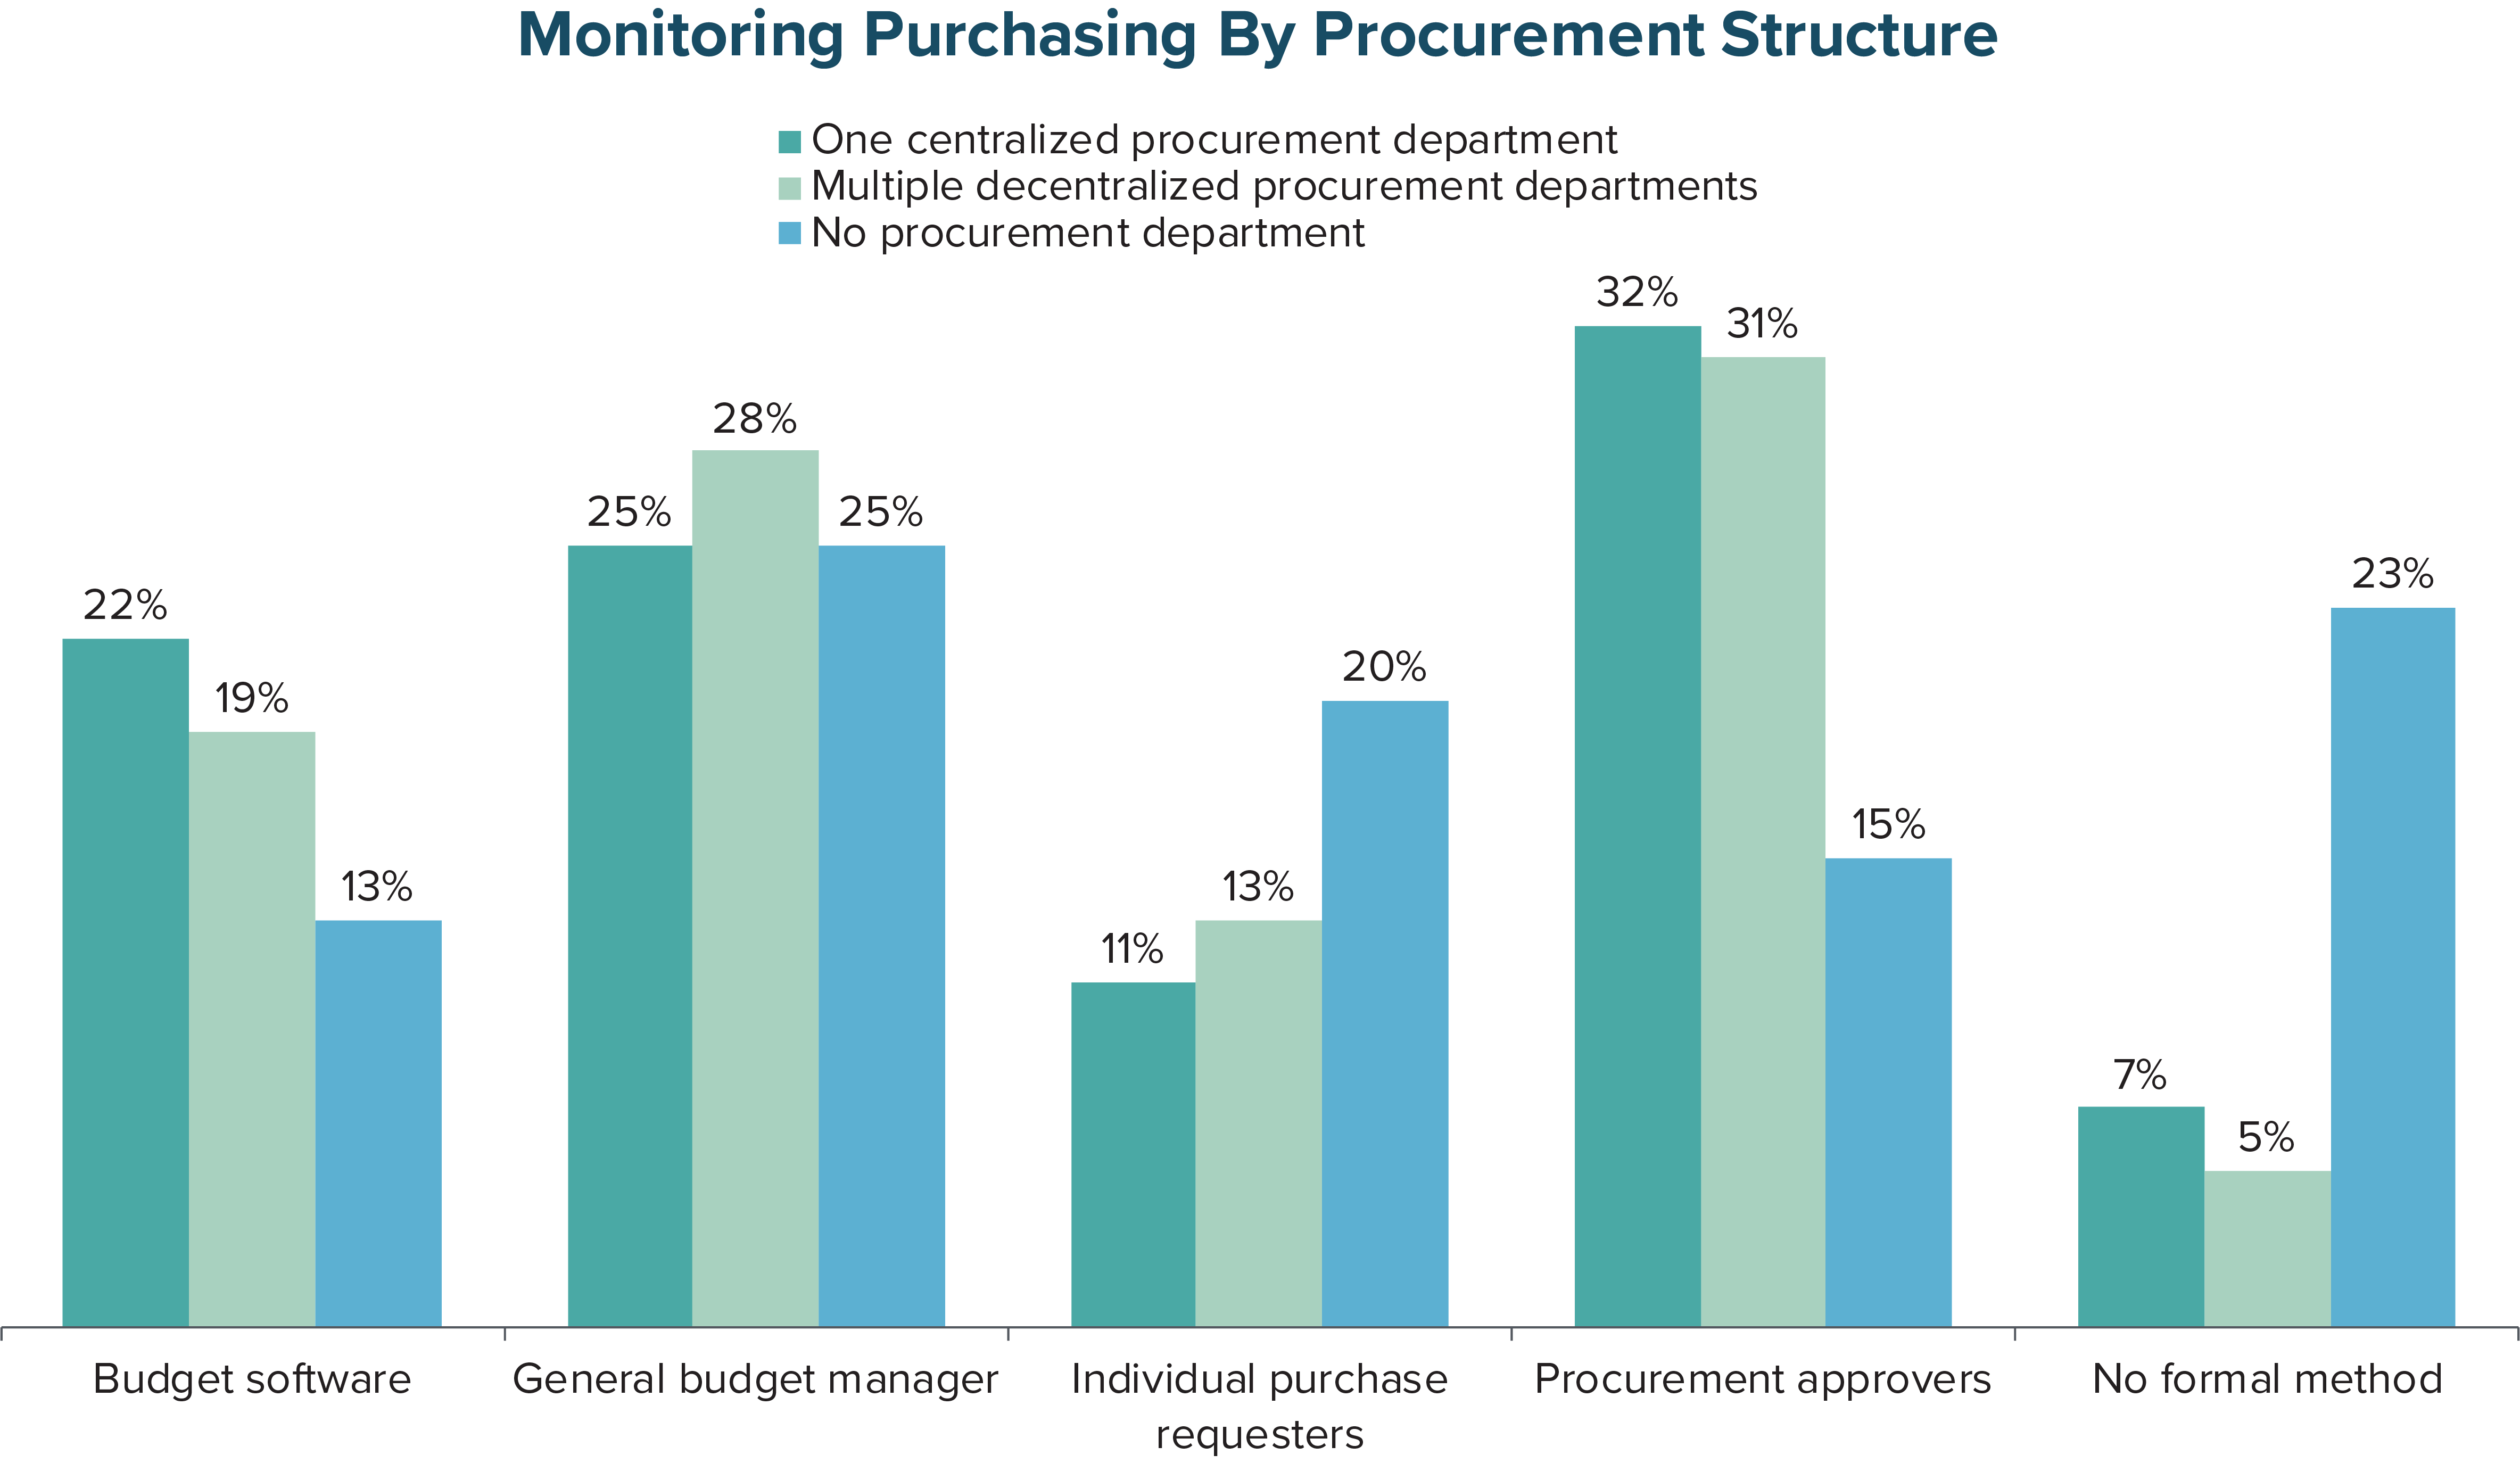 Monitoring Purchasing by Procurement Structure